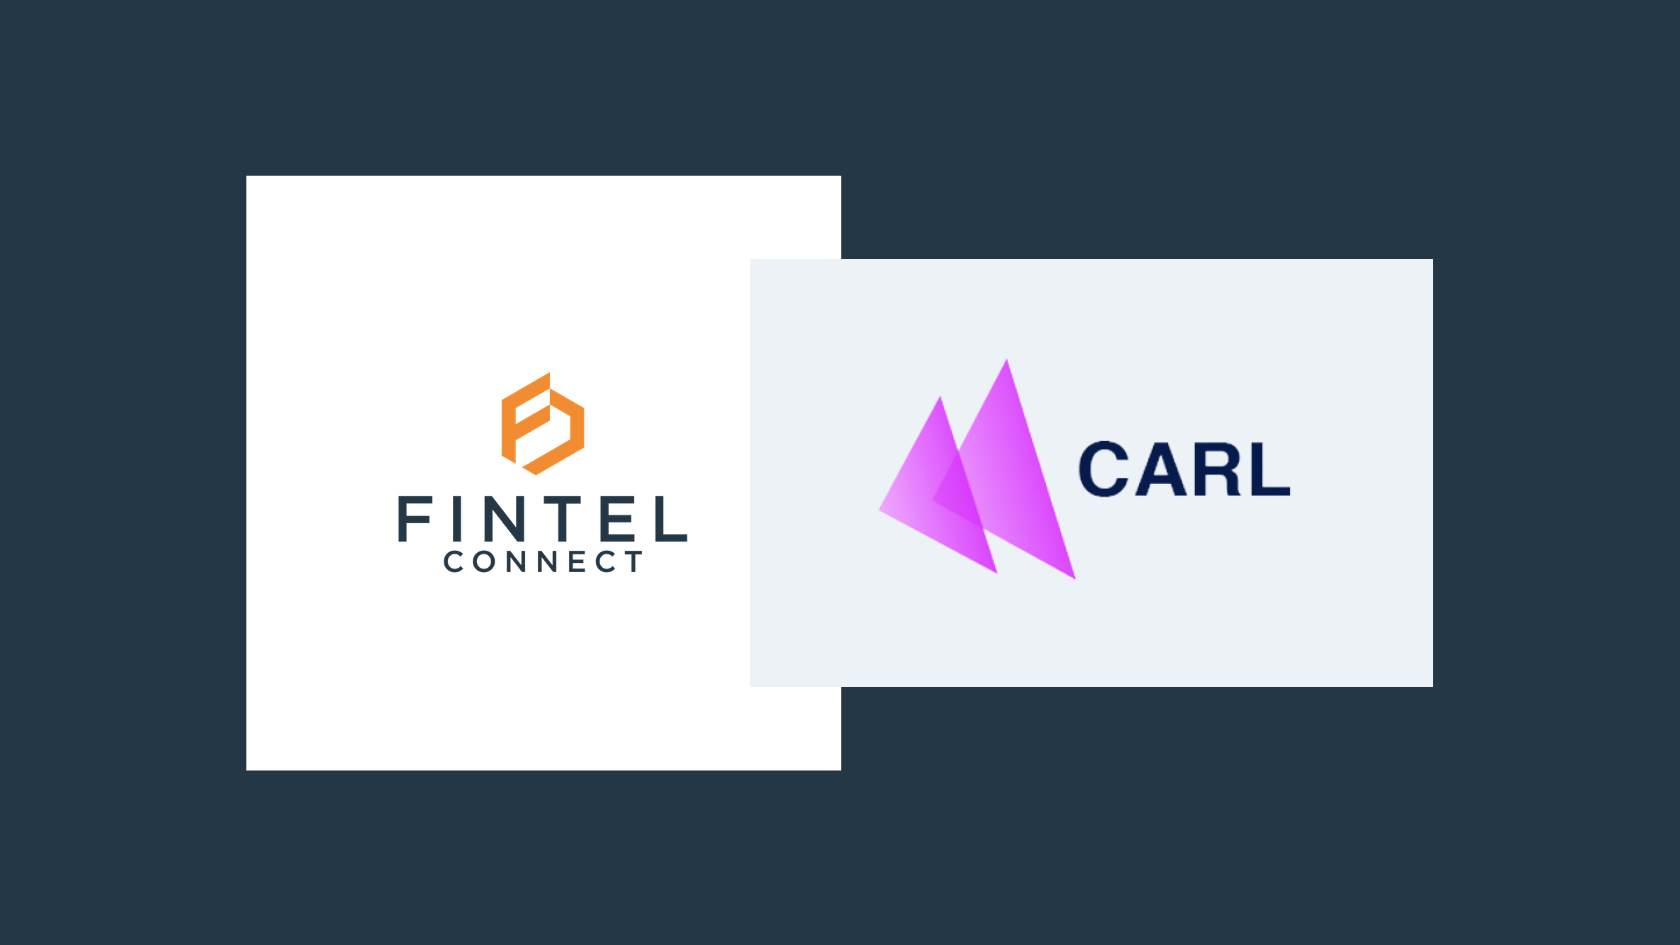 CARL Launches New Affiliate Program with Fintel Connect